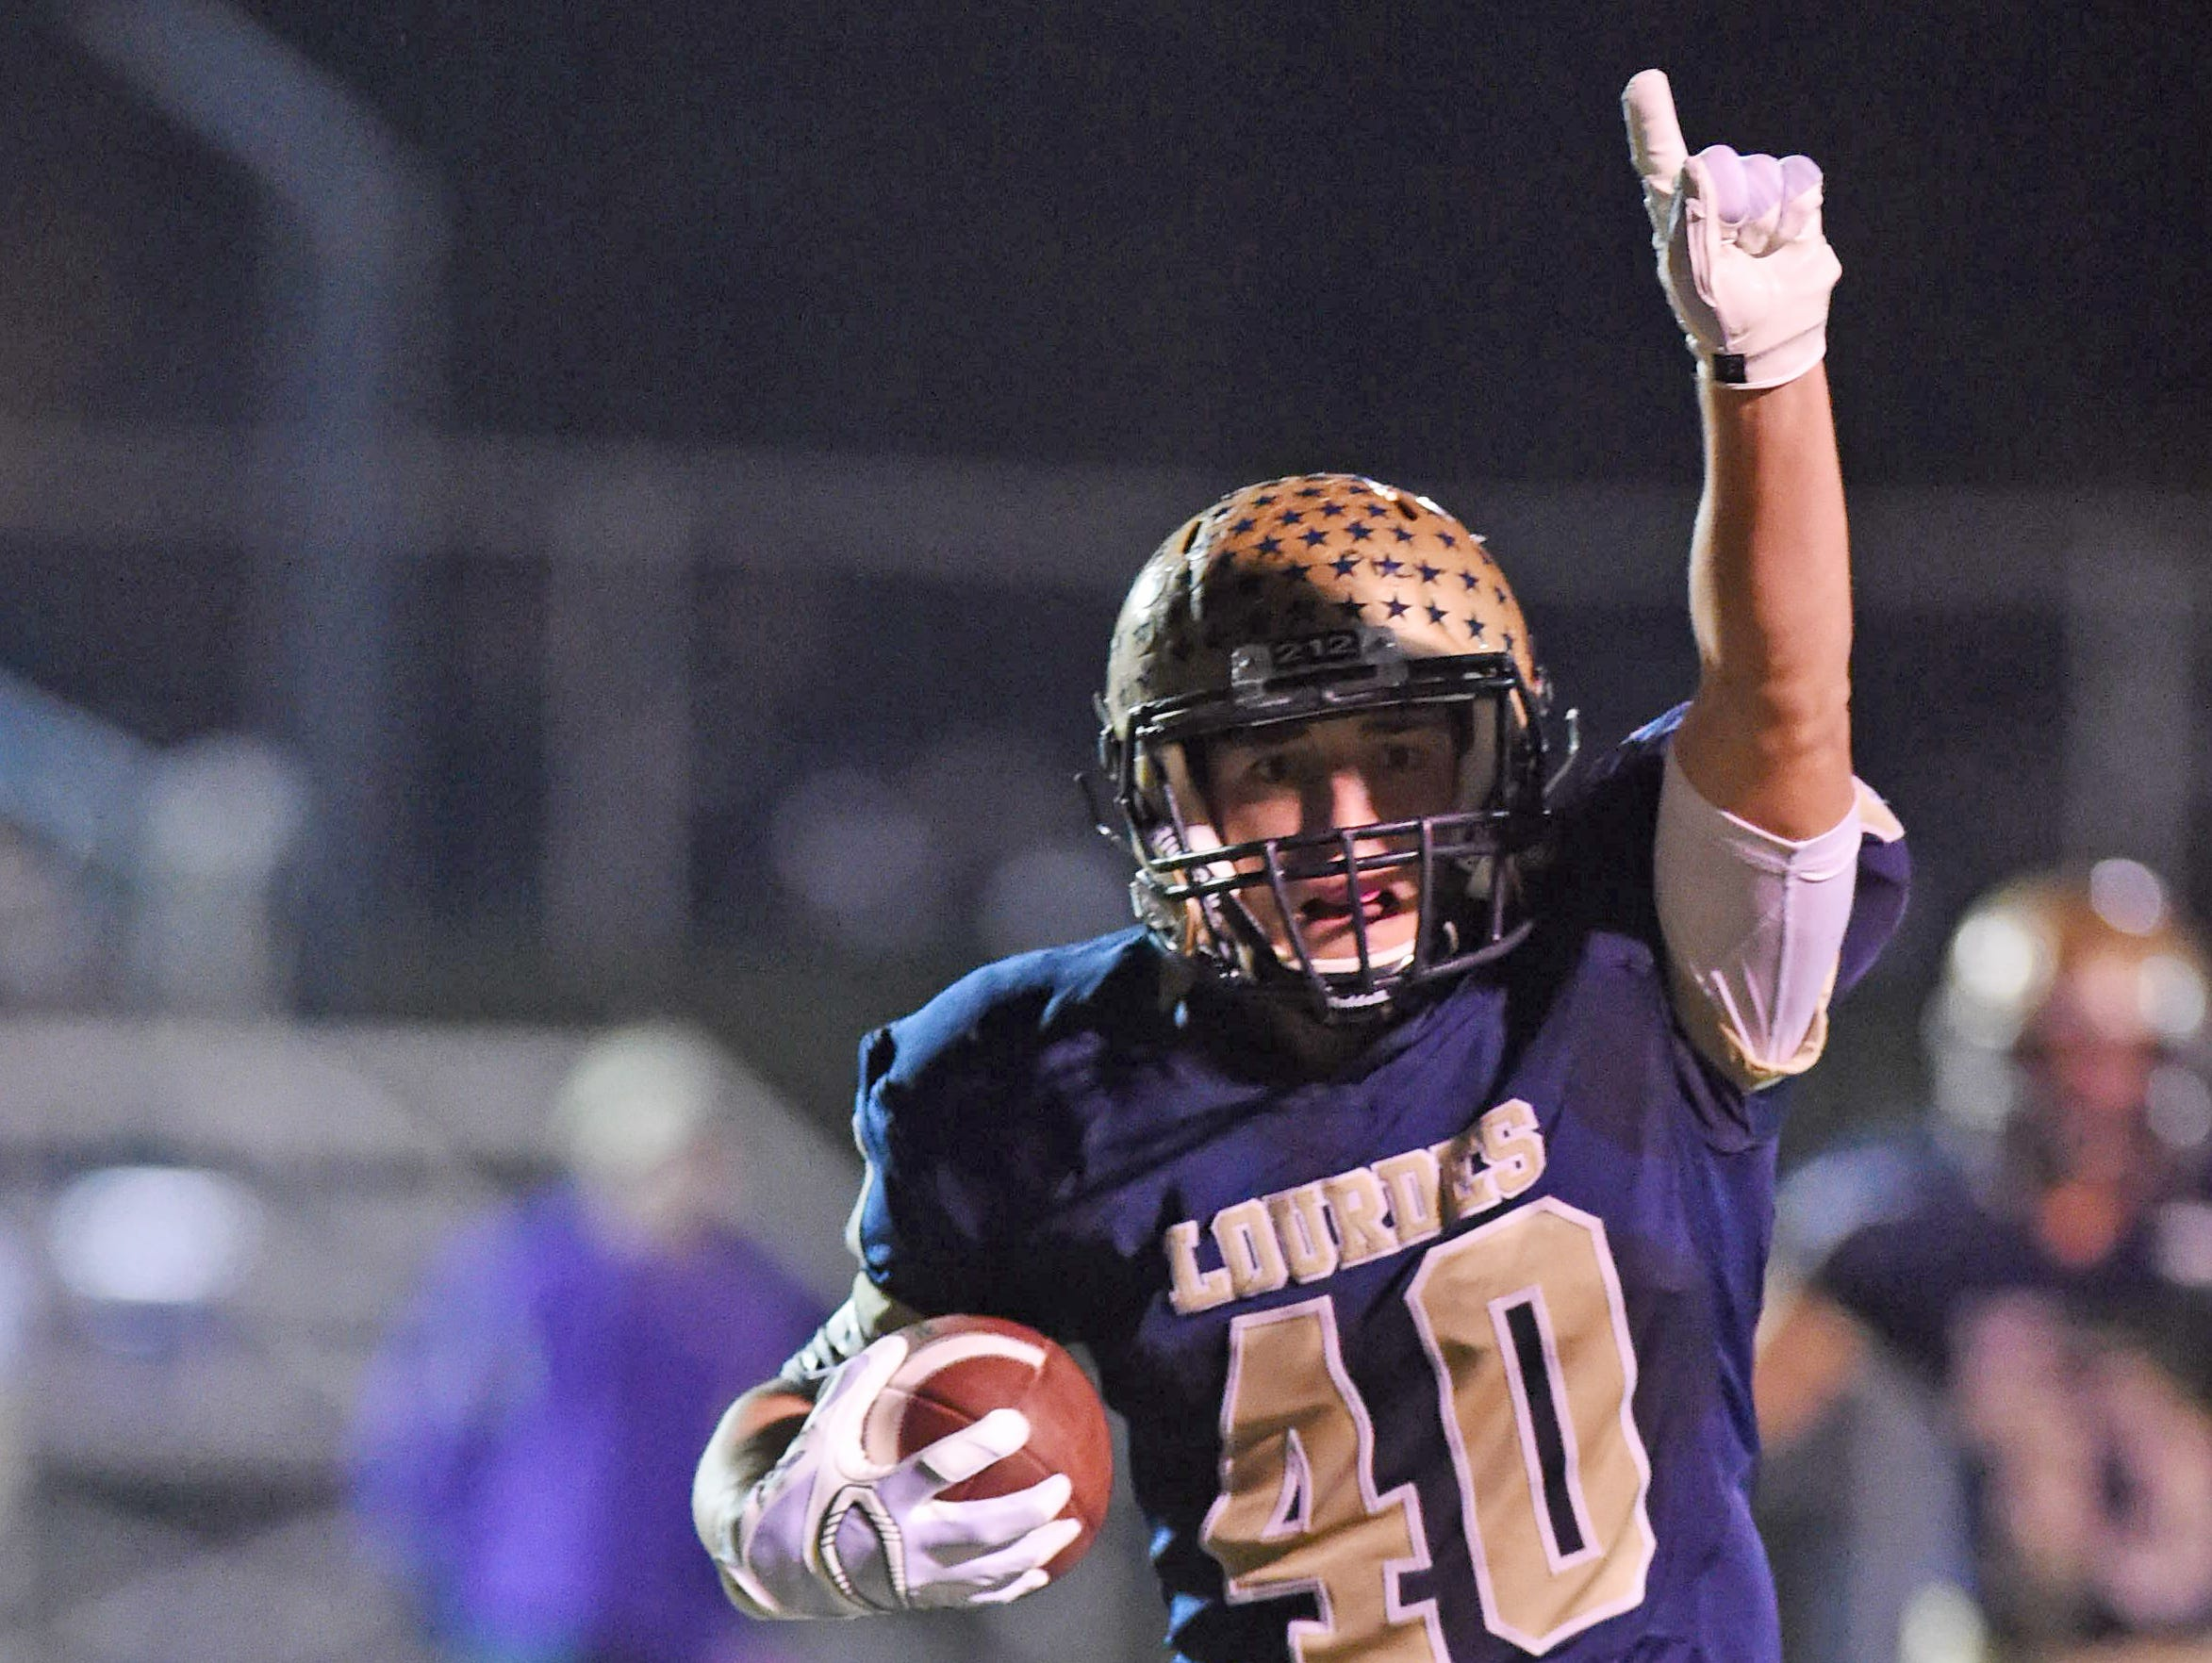 Our Lady of Lourdes High School's Billy Wagner celebrates a touchdown during his team's state Class A semifinal victory over Amsterdam at Dietz Stadium in Kingston on Nov. 20.